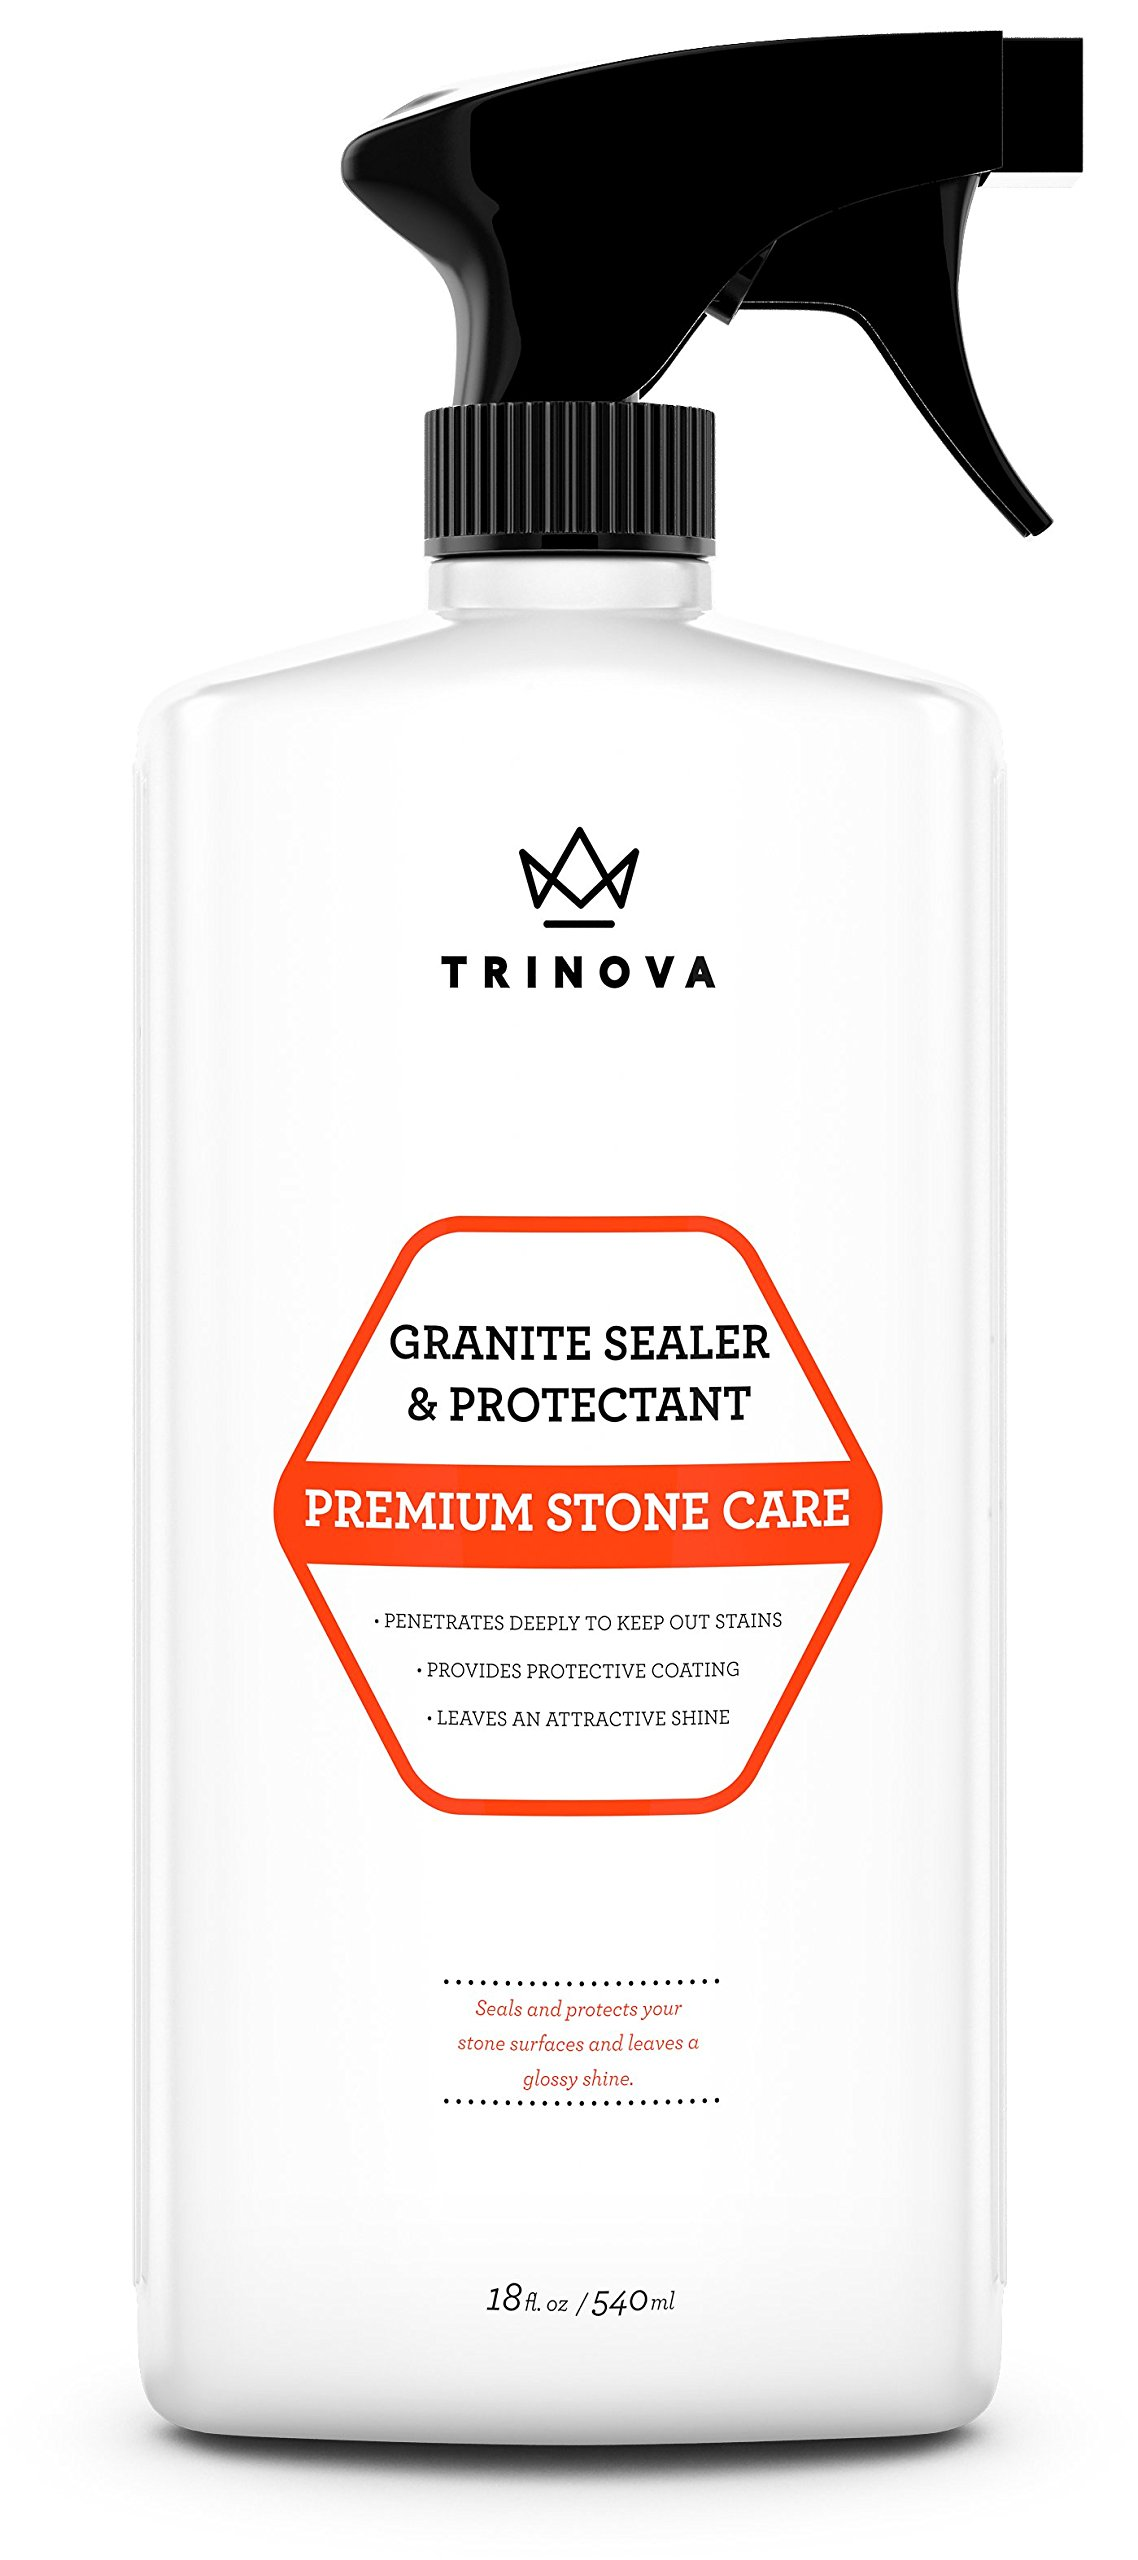 Granite Sealer & Protector - Best Stone Polish, Protectant & Care Product - Easy Maintenance for Clean Countertop Surface, Marble, Tile - No Streaks, Stains, Haze, or Spots - 18 OZ - TriNova by TriNova